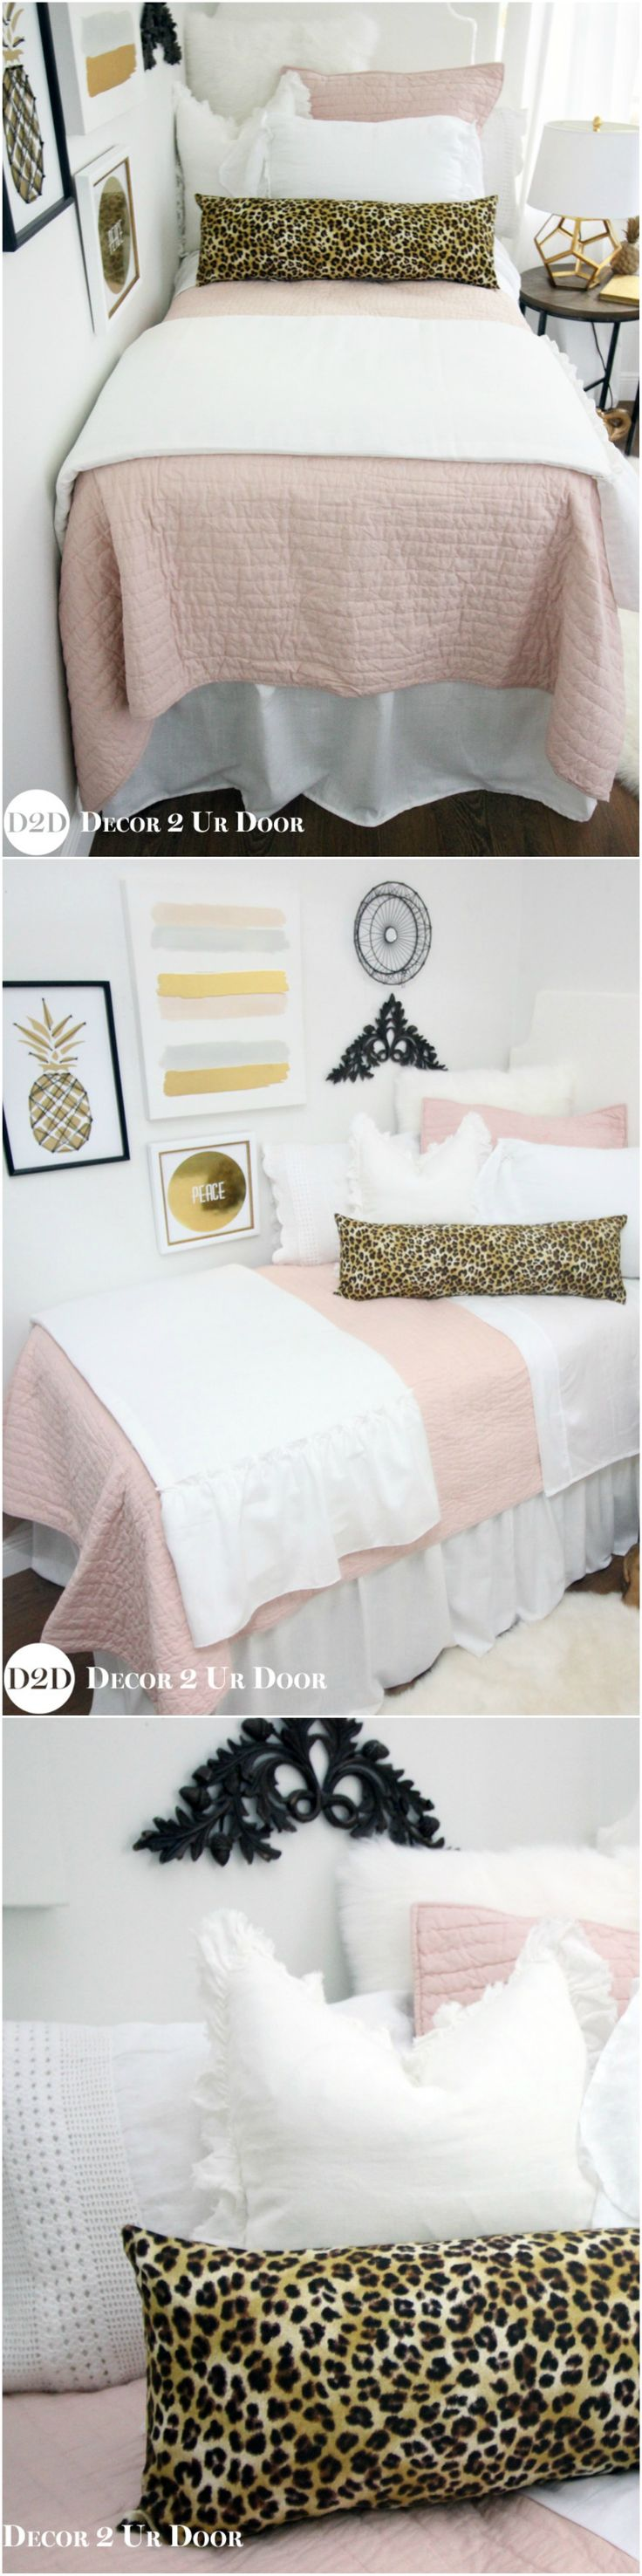 Cheetah print and blush dorm room. Don't cheet-ah yourself out of this stylish and sophisticated blush pink and cheetah print dorm bedding. We swoon over our blush quilt paired with textured furs, frilly linens, and cheetah print accents. This set screams timeless, trendy, and totally gorgeous dorm room bedding. Your friends will definitely be jealous of your sassy new digs!